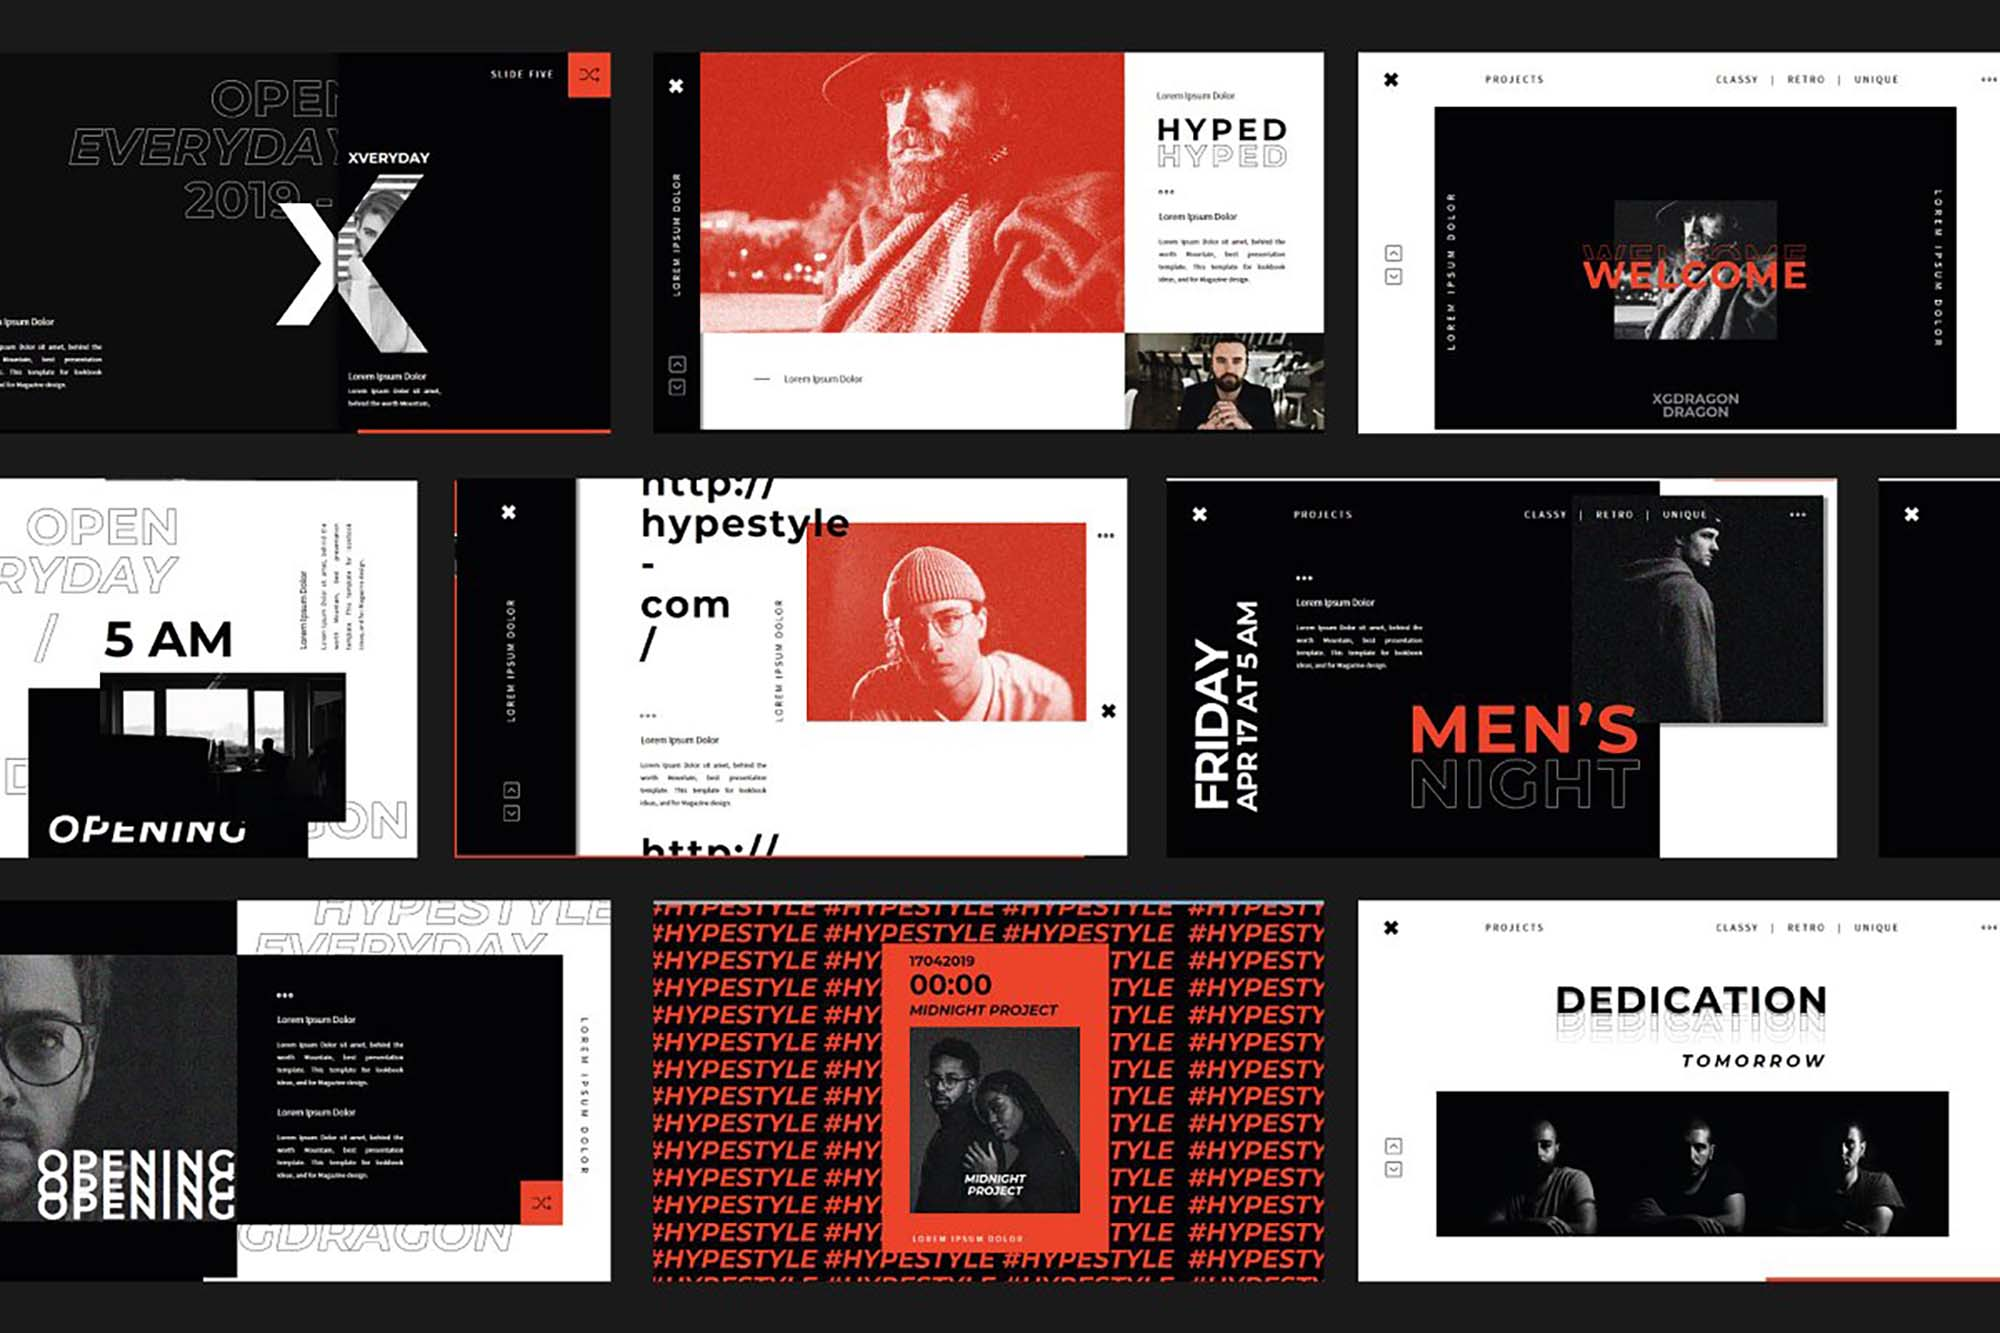 XGDragon PowerPoint Presentation Template 7